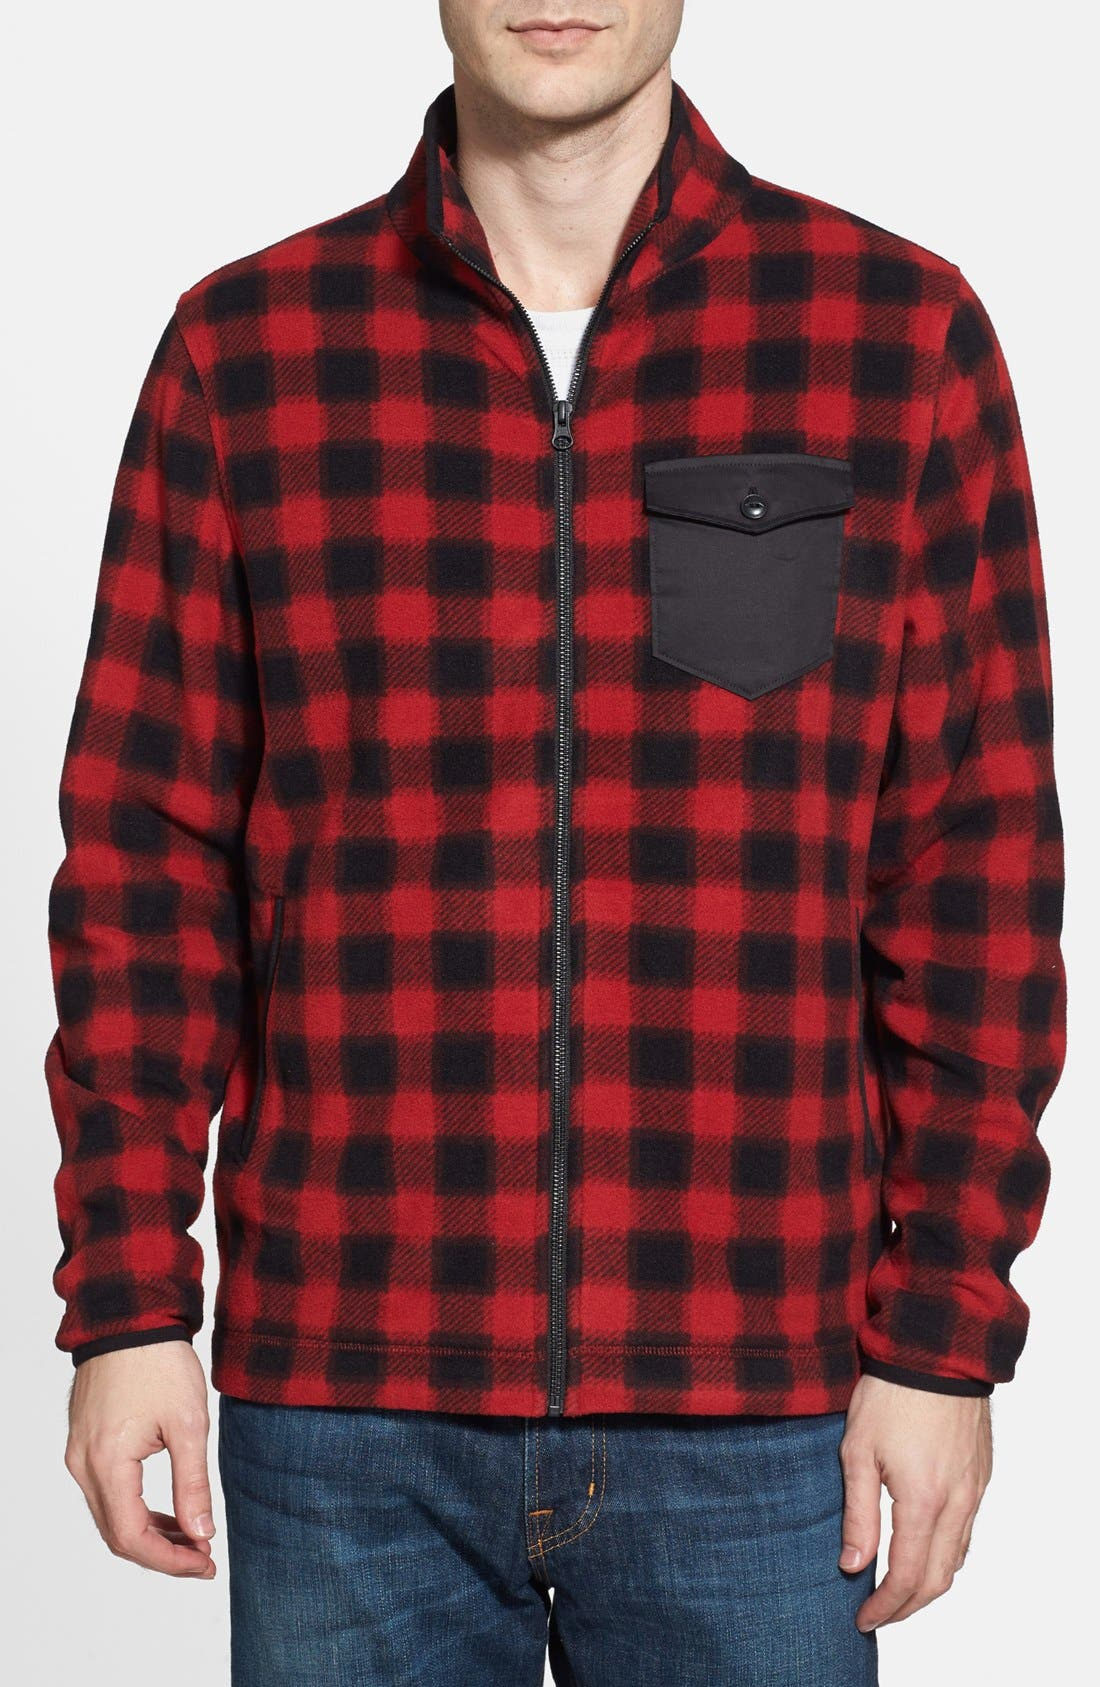 Main Image - Wallin & Bros. Trim Fit Plaid Full Zip Fleece